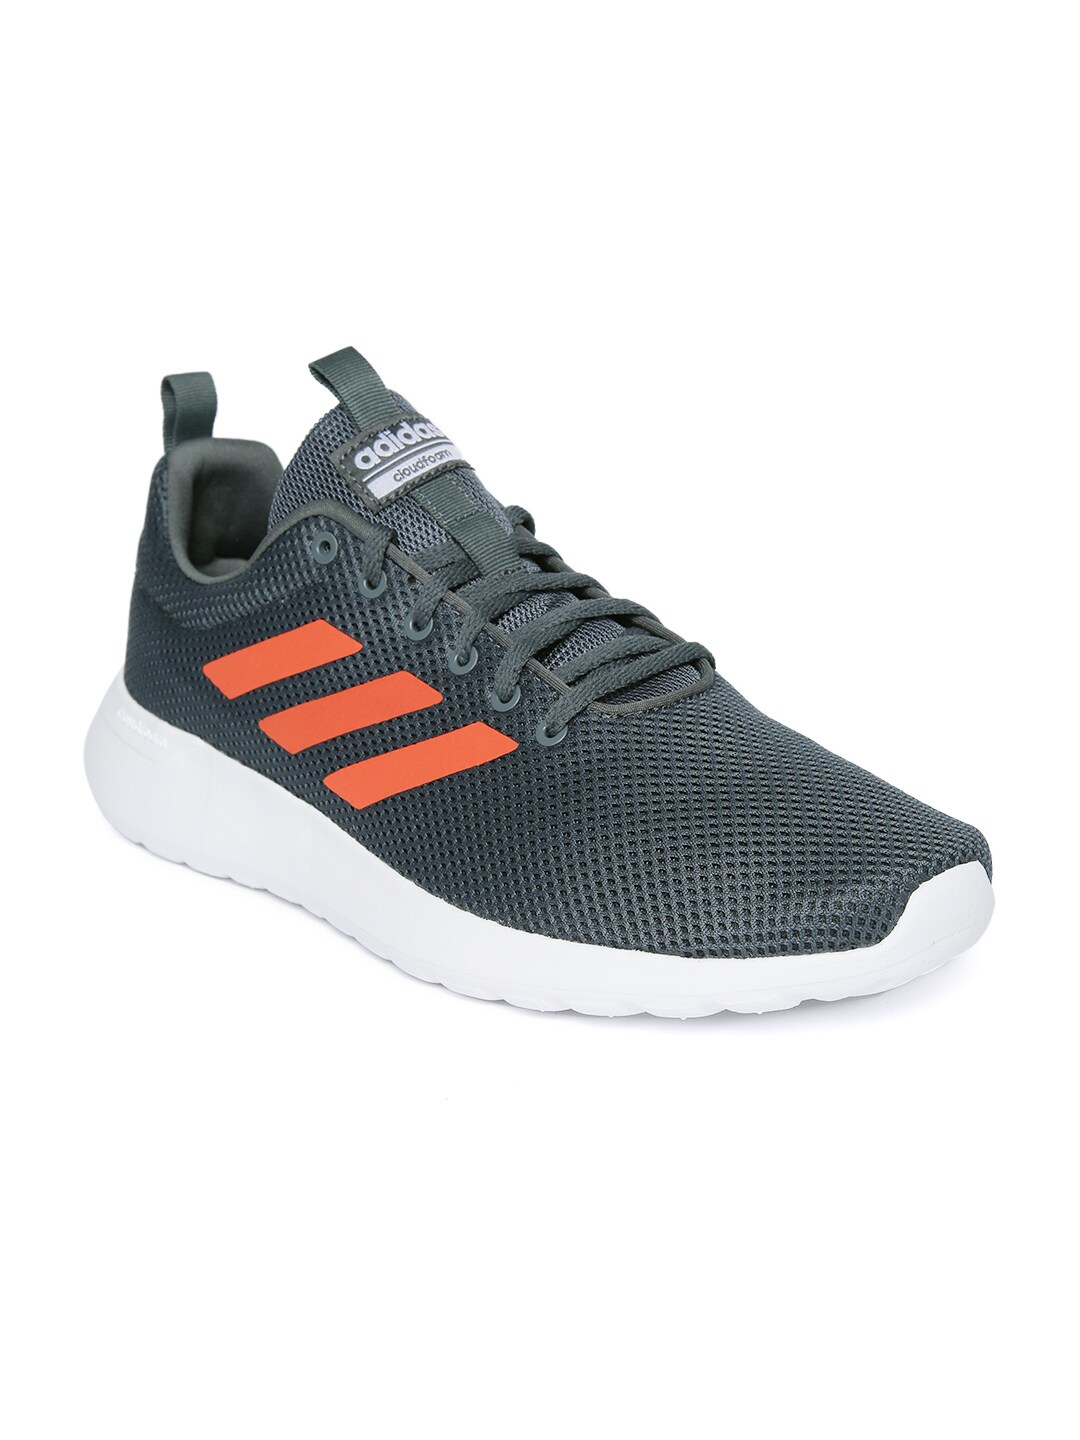 buy popular 198e0 141eb Adidas Shoes - Buy Adidas Shoes for Men   Women Online - Myntra